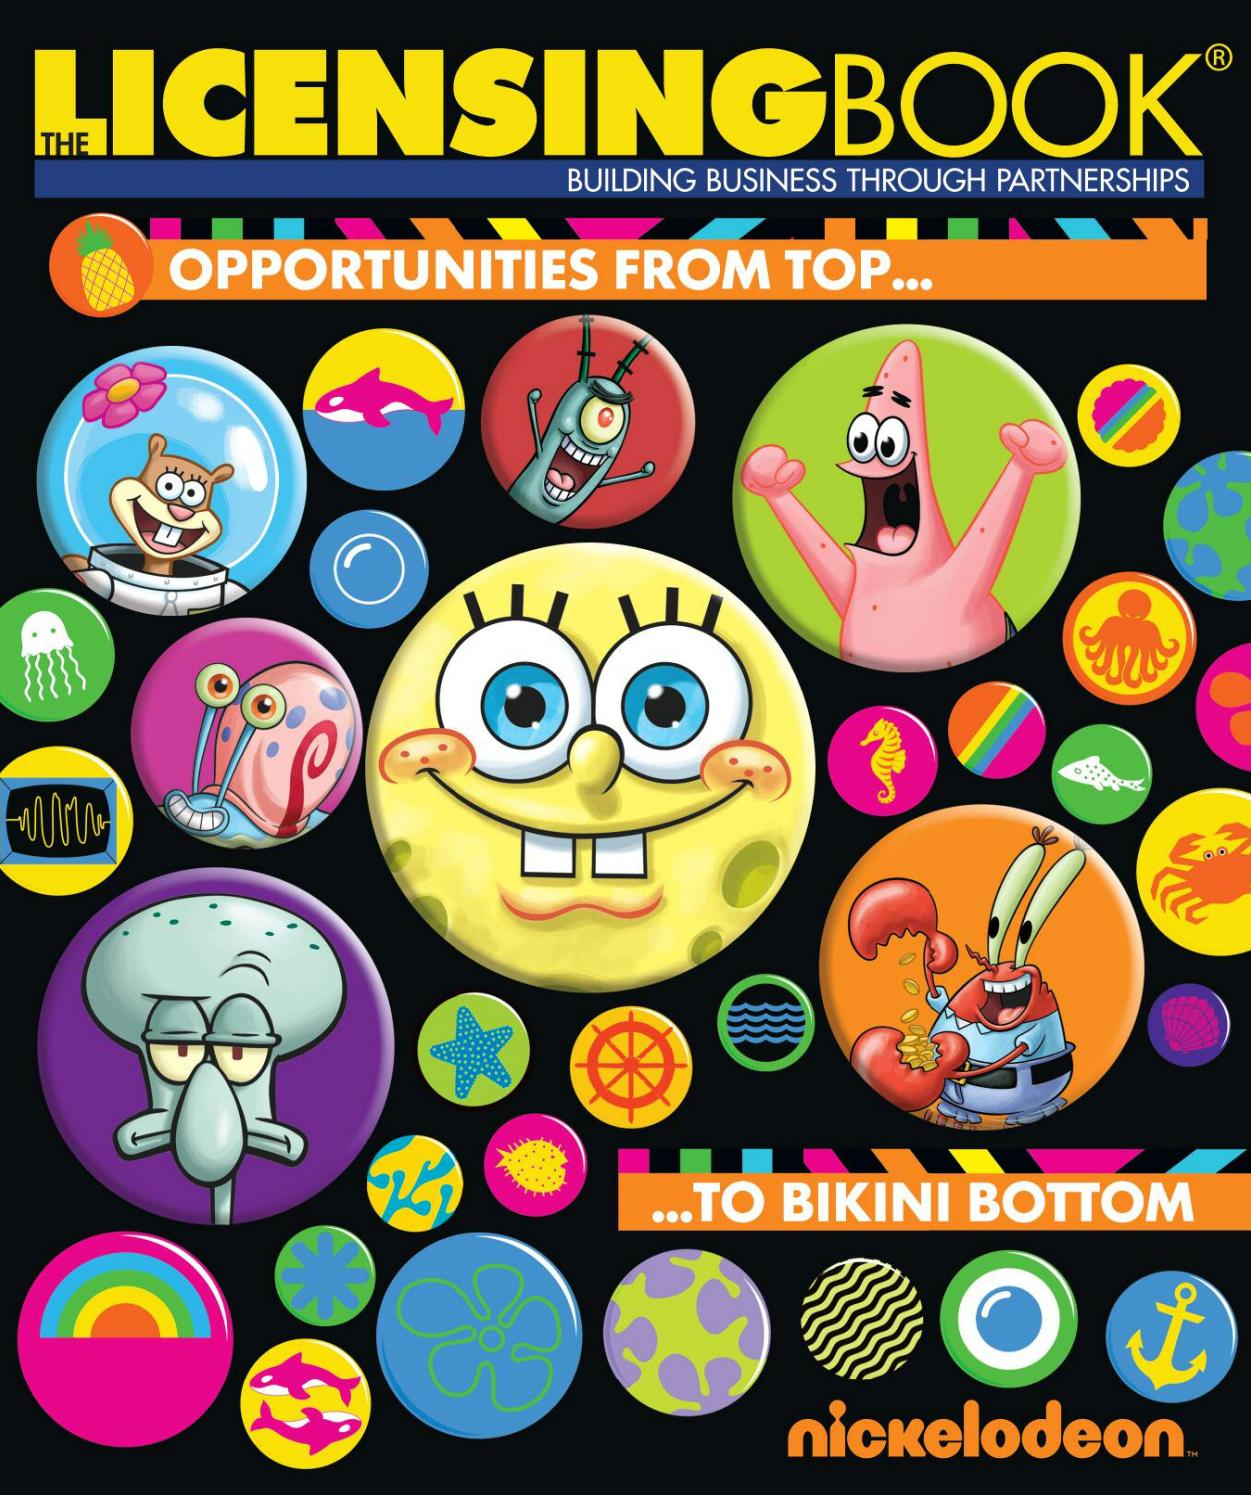 Summer 2013 by The Licensing Book - issuu